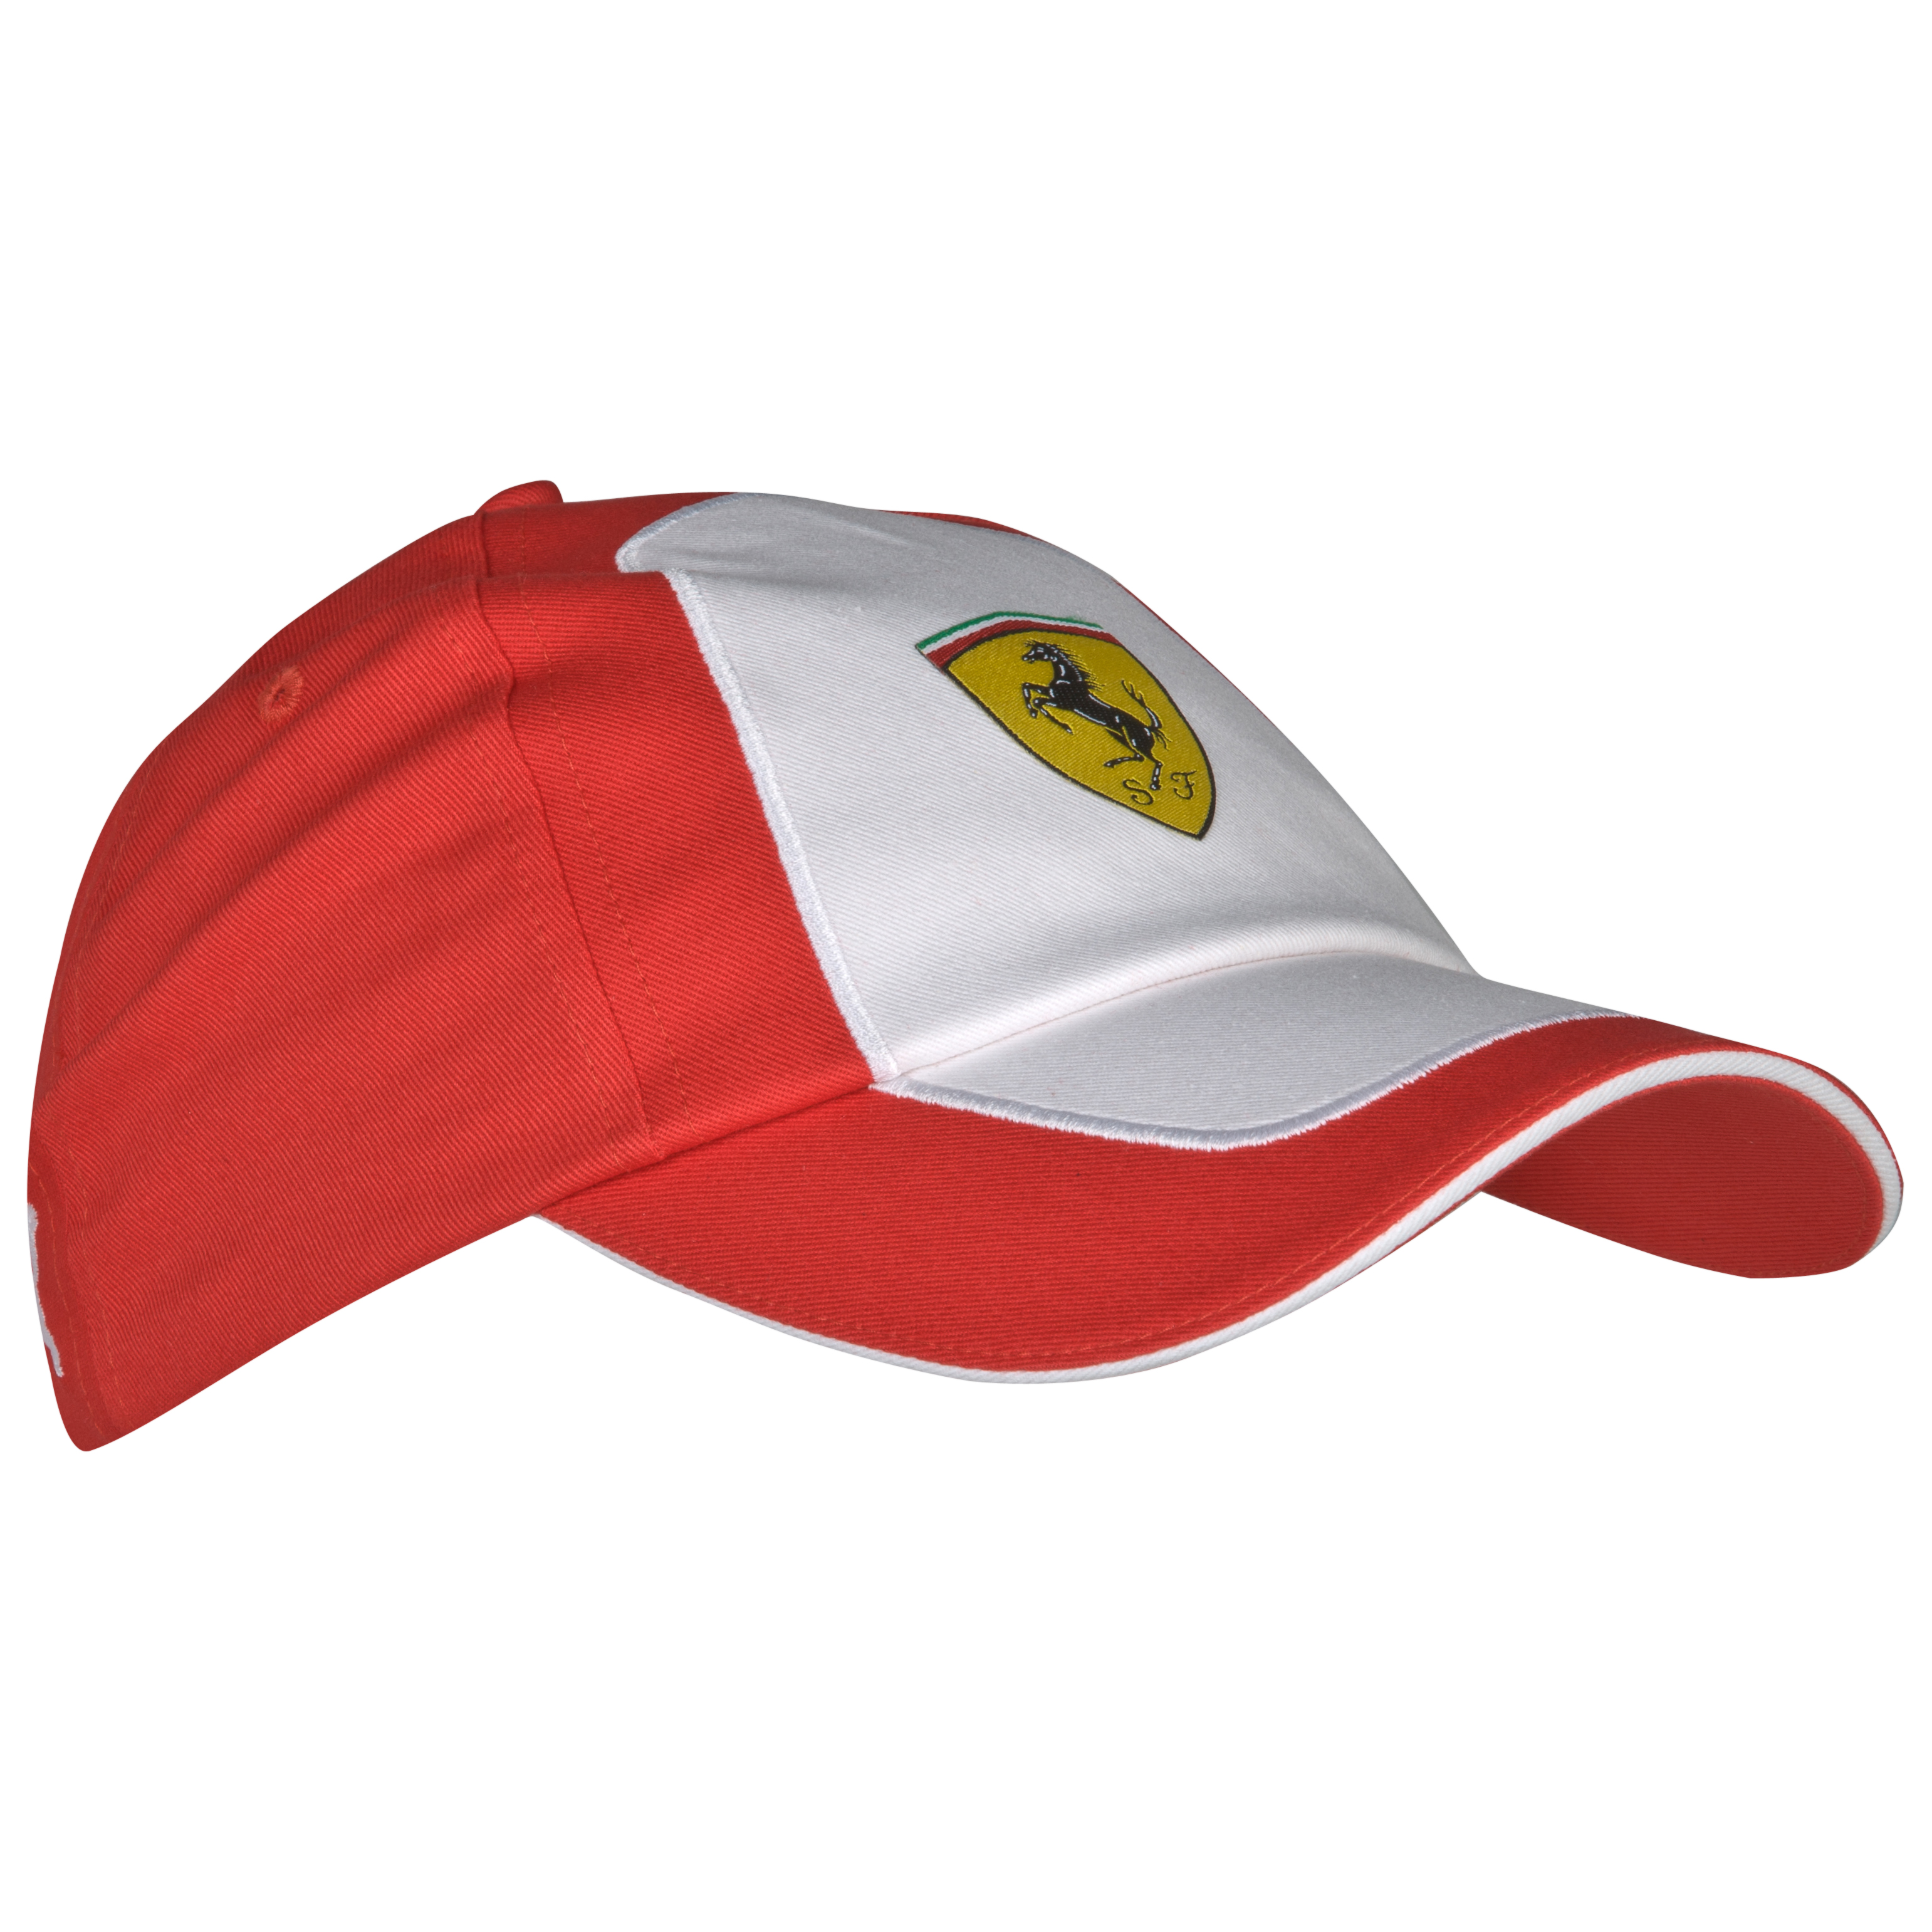 Scuderia Ferrari 2012 Cap - Rosso Corsa